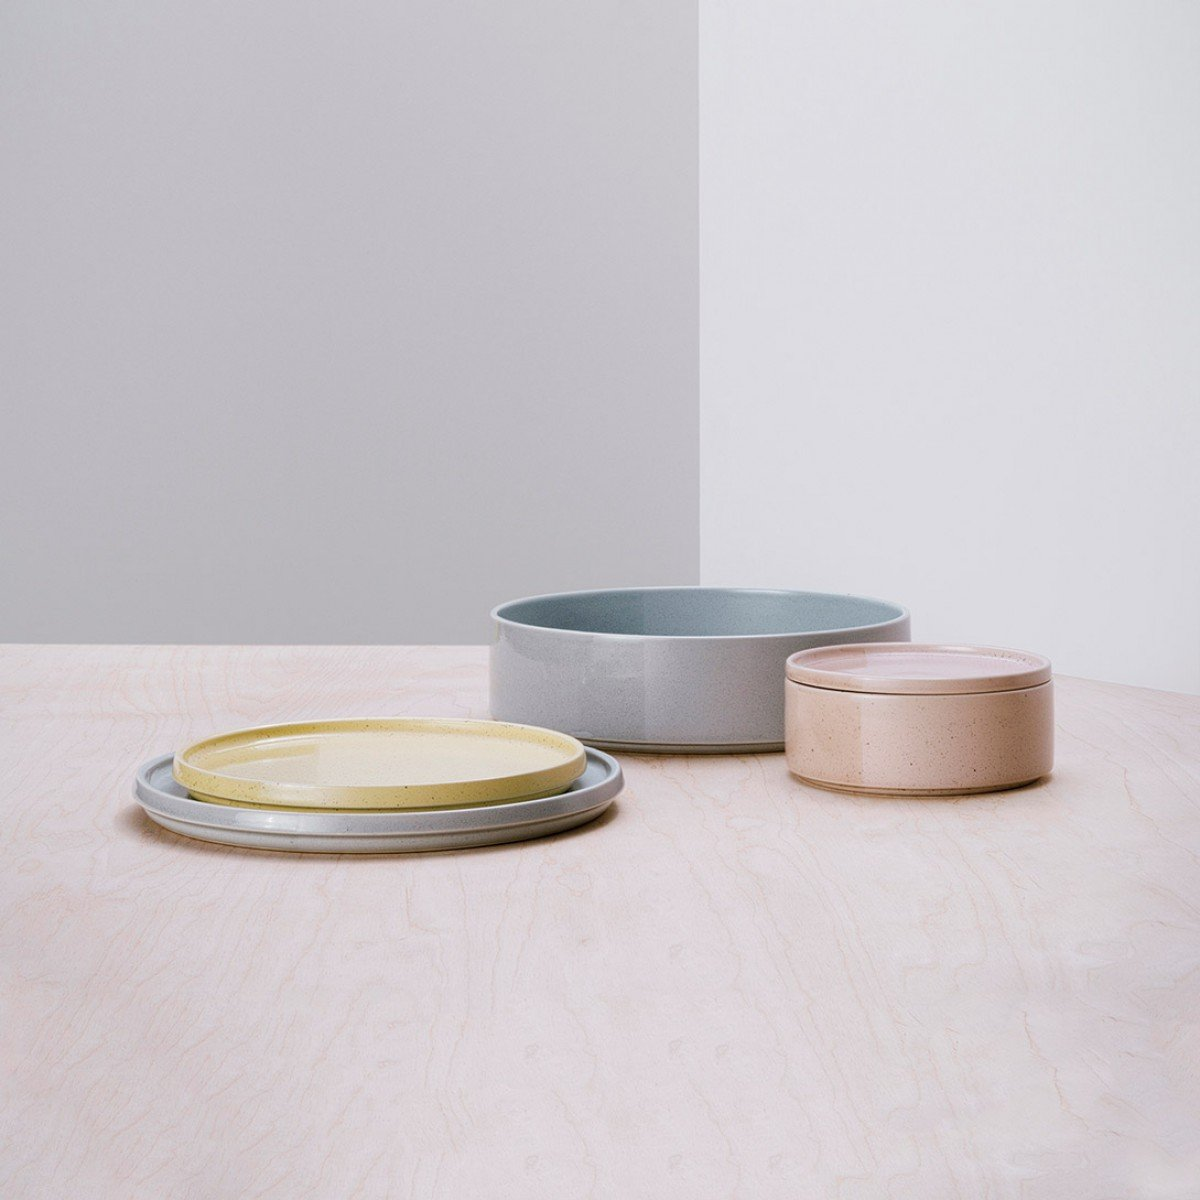 us2015-sediment-set-argb_1_1 & Sediment Tableware | Modern Intentions - Shop modern dishes